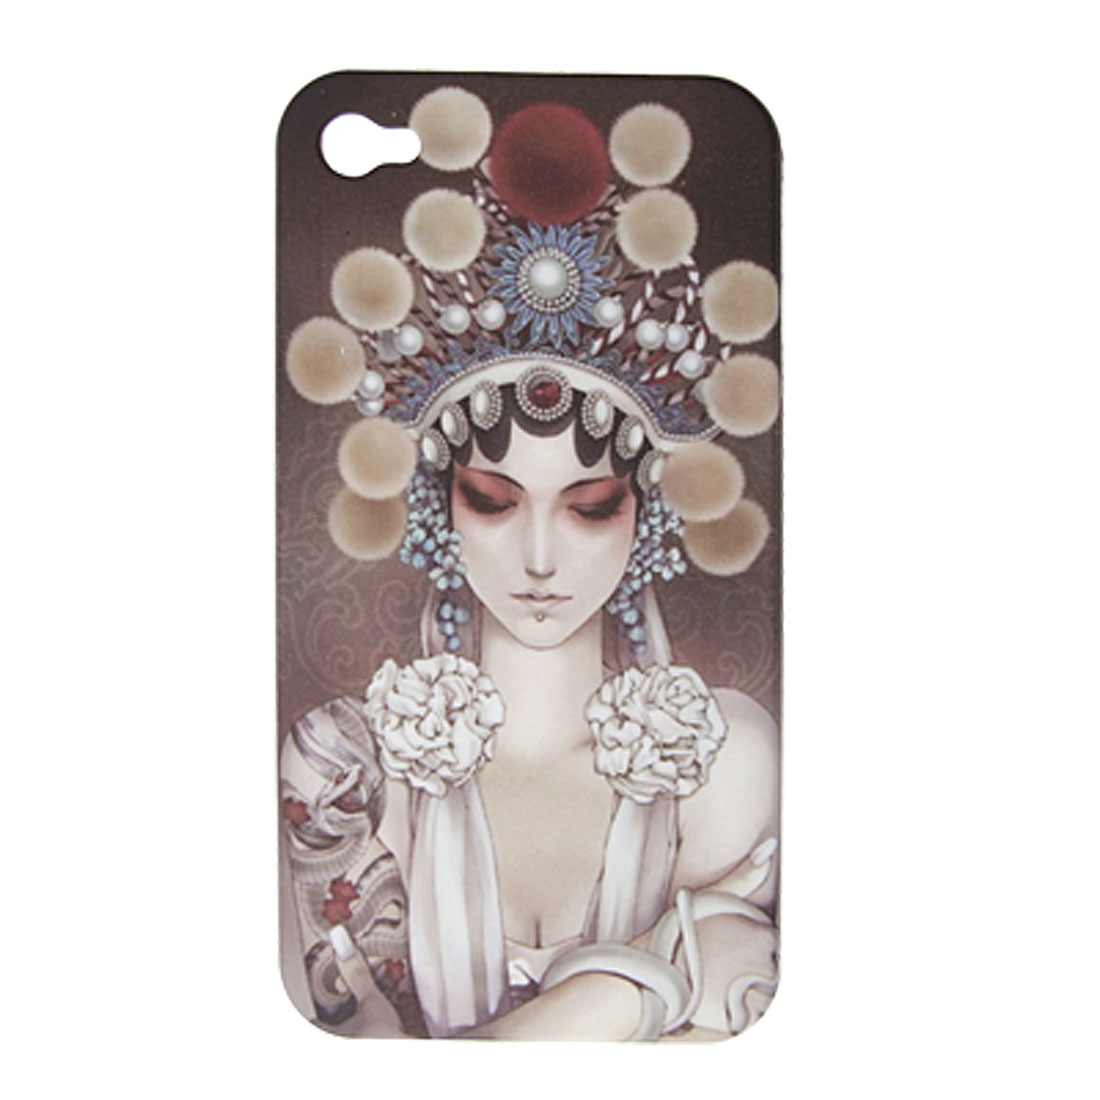 Coronetted Lady Print Hard Plastic Case for iPhone 4 4G